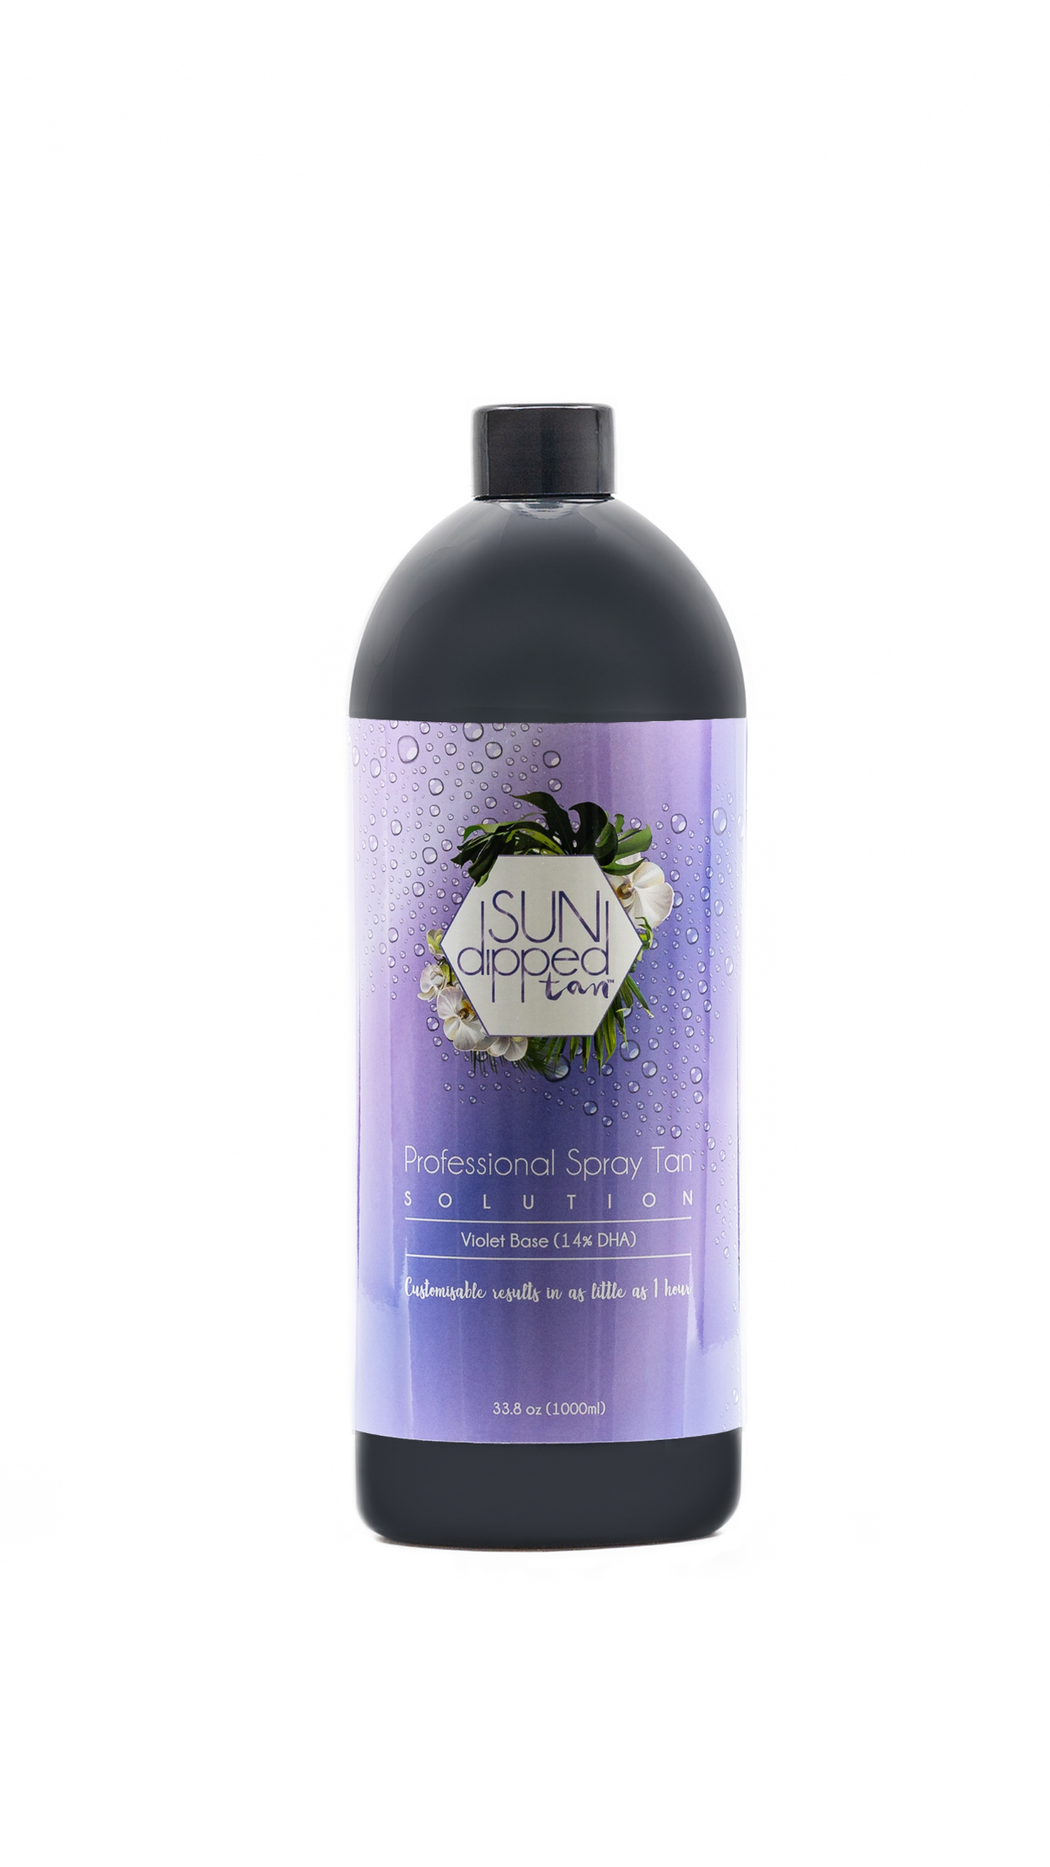 14% VIOLET - CHOCOLATE PROFESSIONAL SPRAY TAN SOLUTION 1L